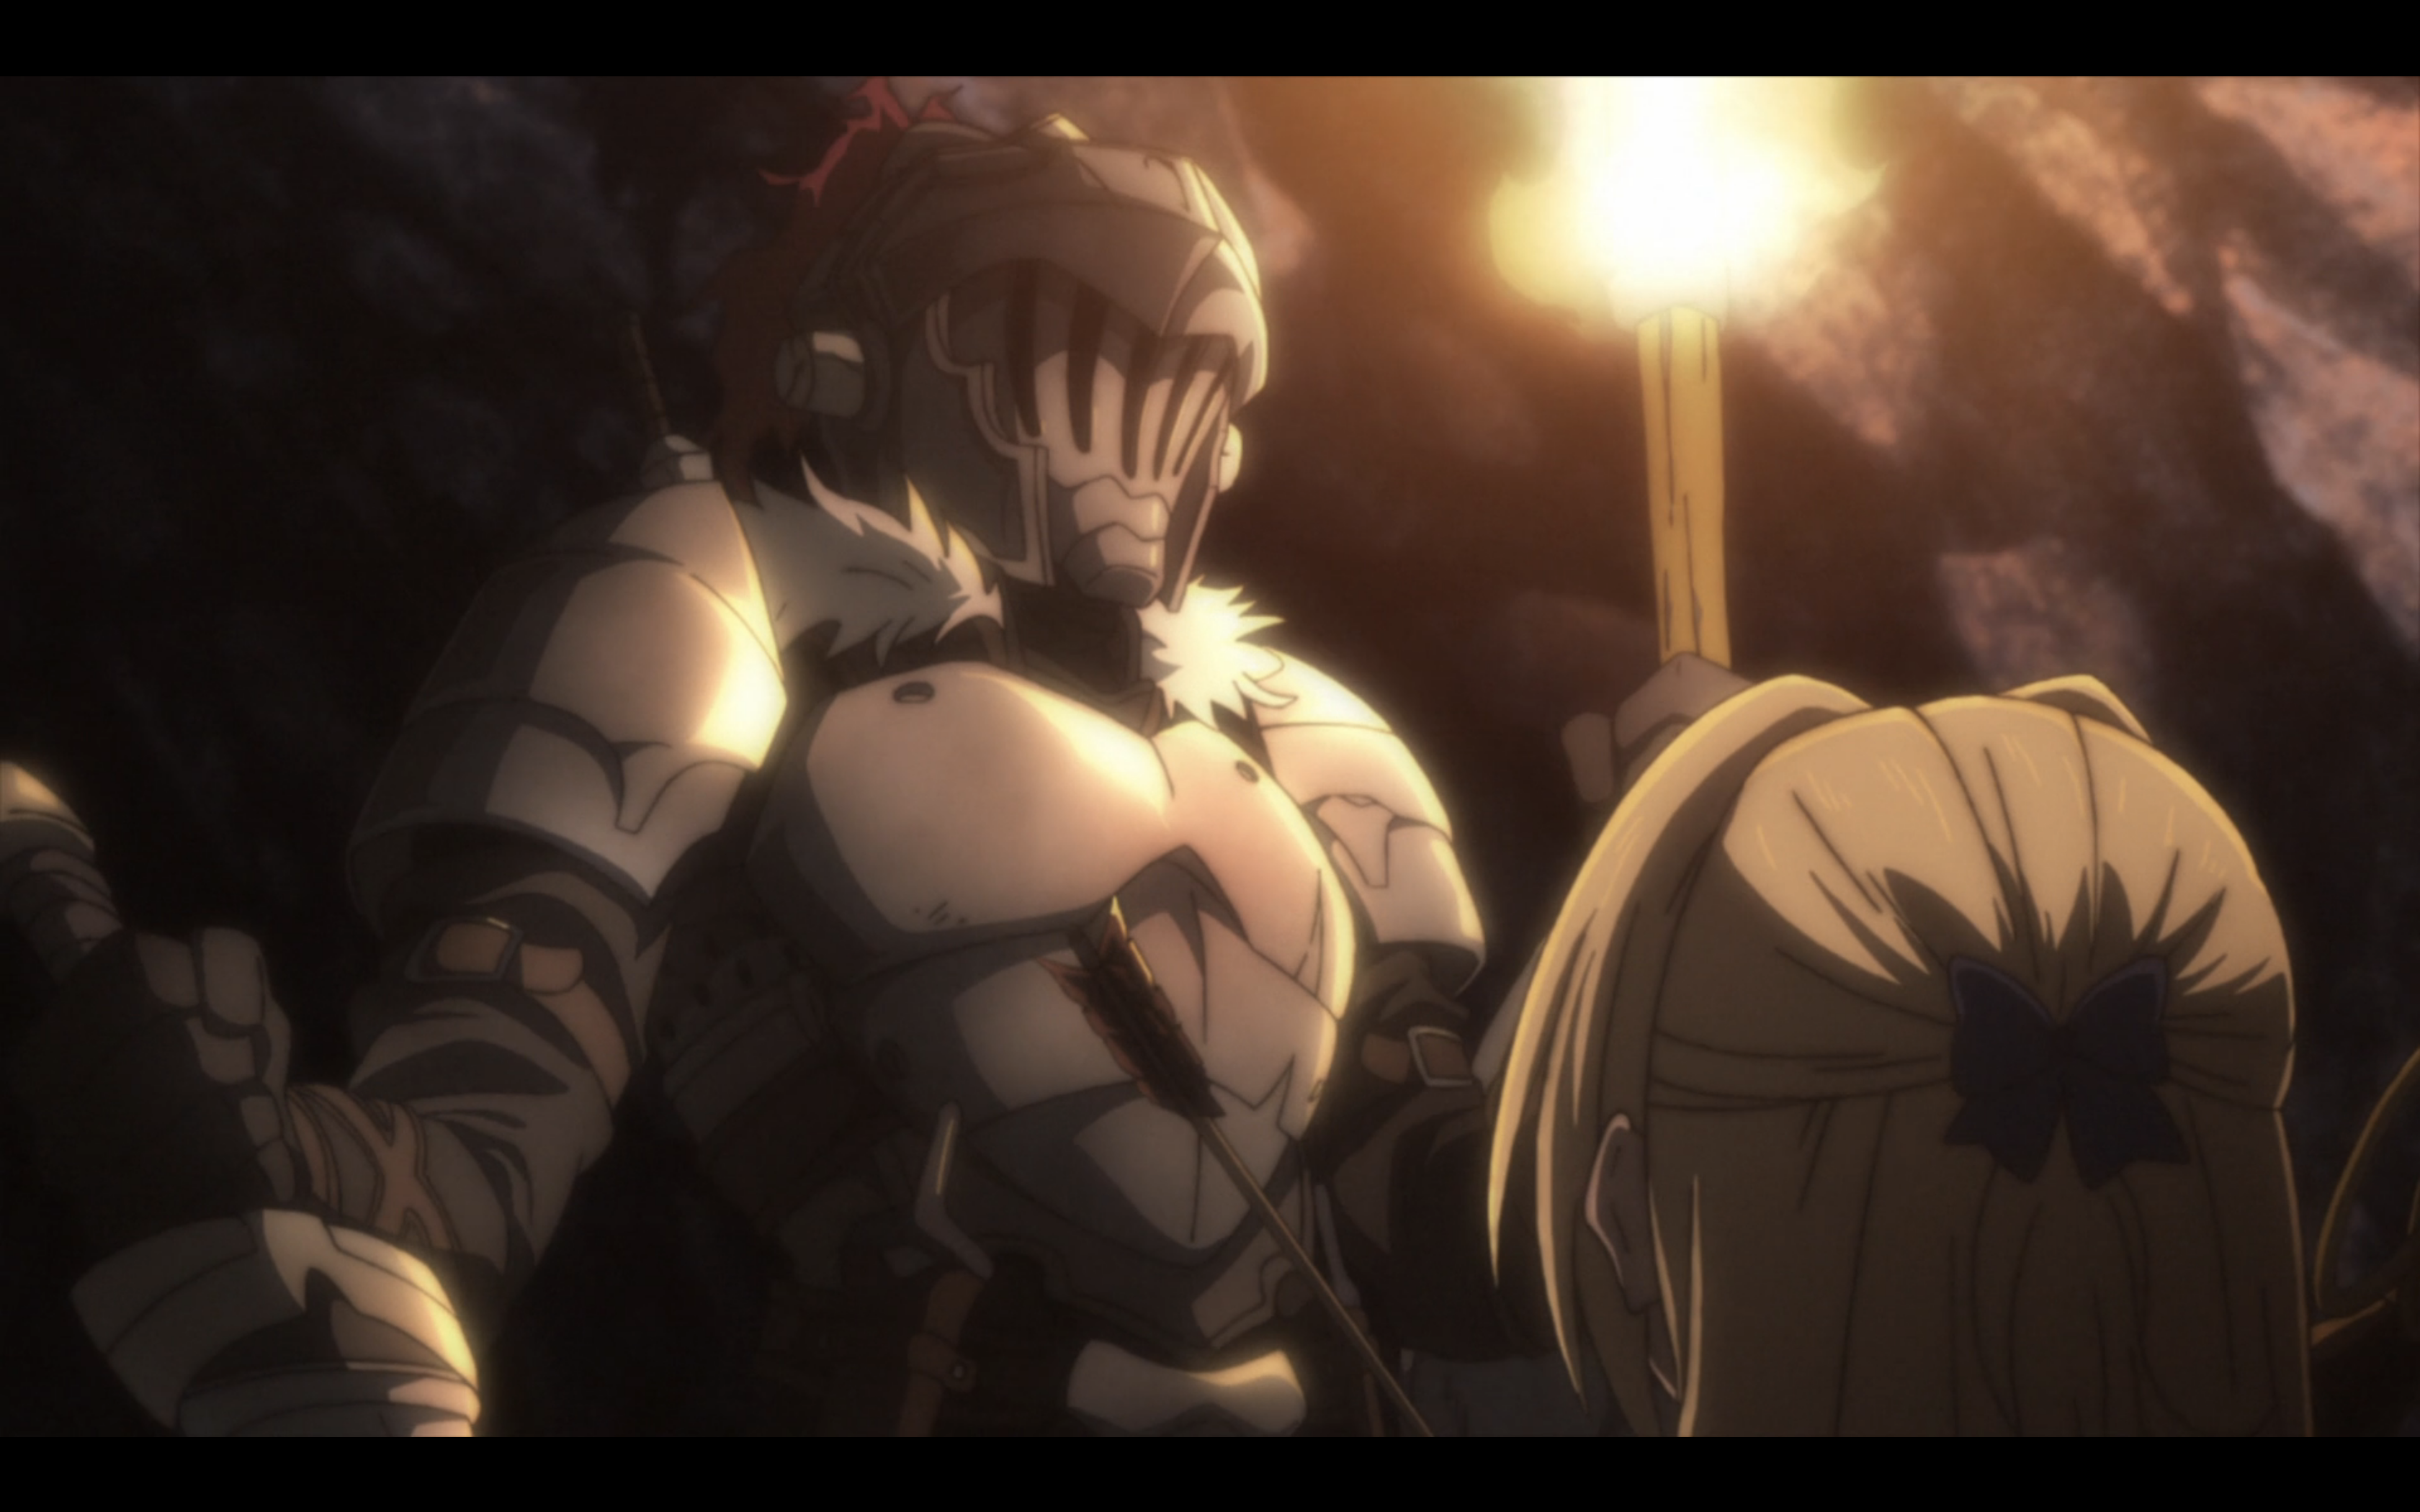 Goblin Slayer - Episode 1 (Review) - The Geekly Grind